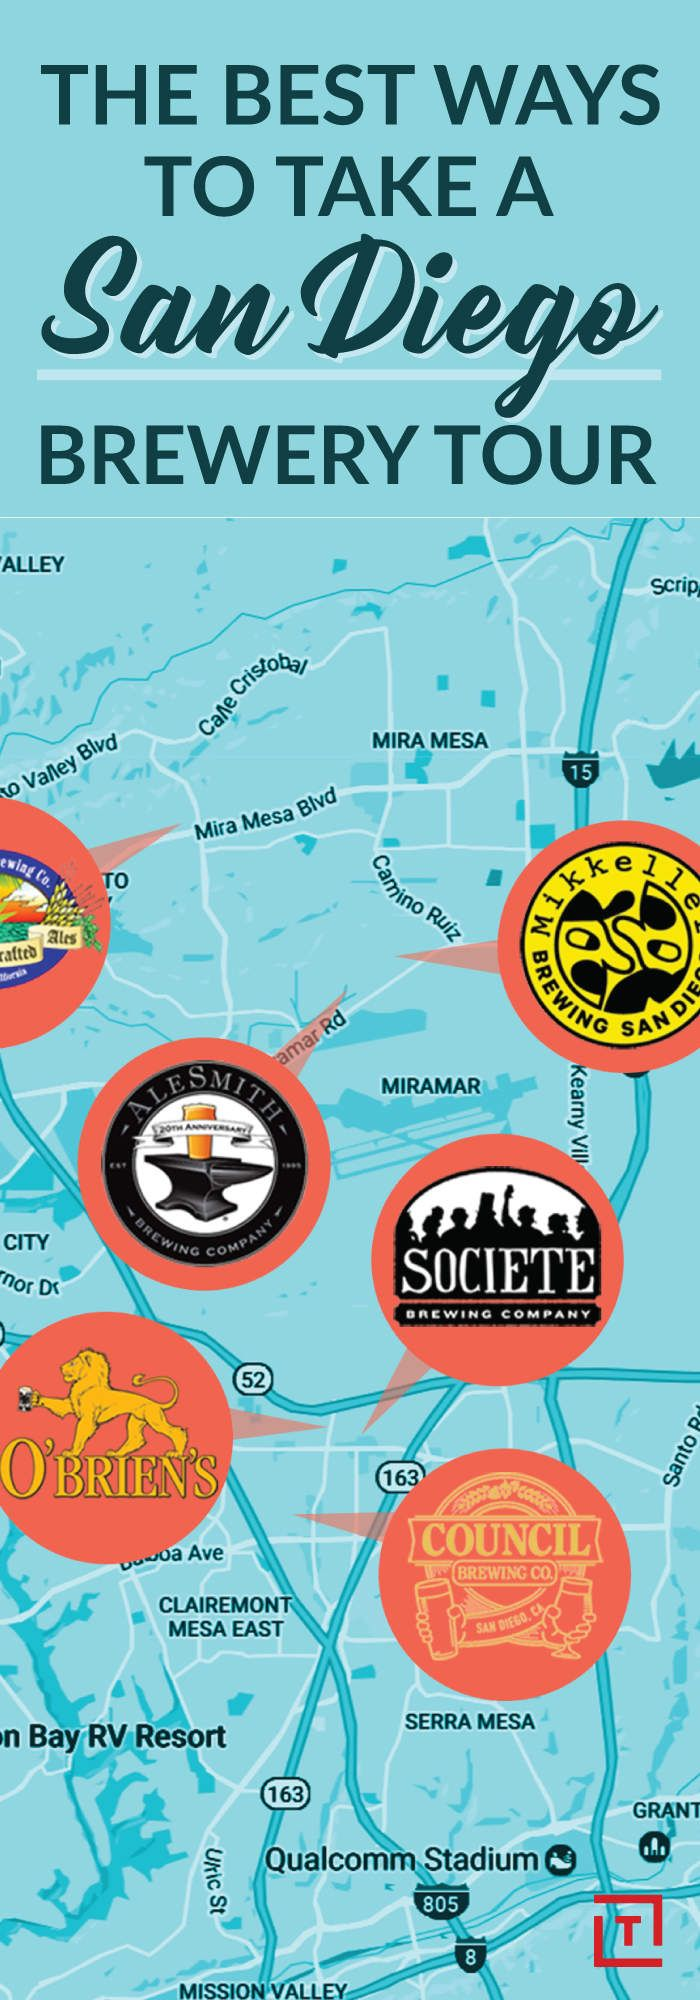 the 5 best san diego brewery crawls, mapped